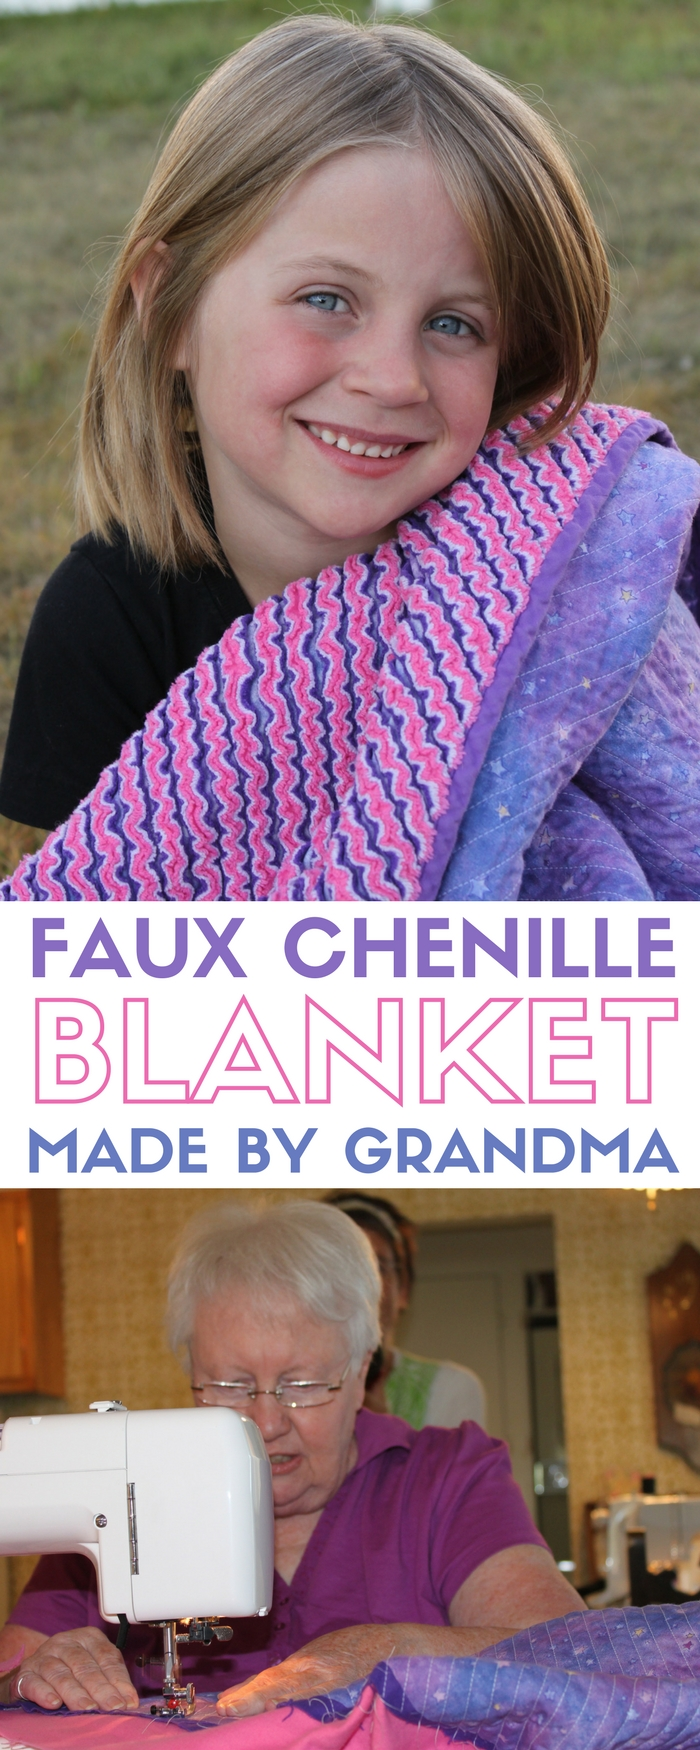 Faux Chenille Blanket | Quilt by Grandma| Quilting | Baby Blanket | Baby Quilt | DIY